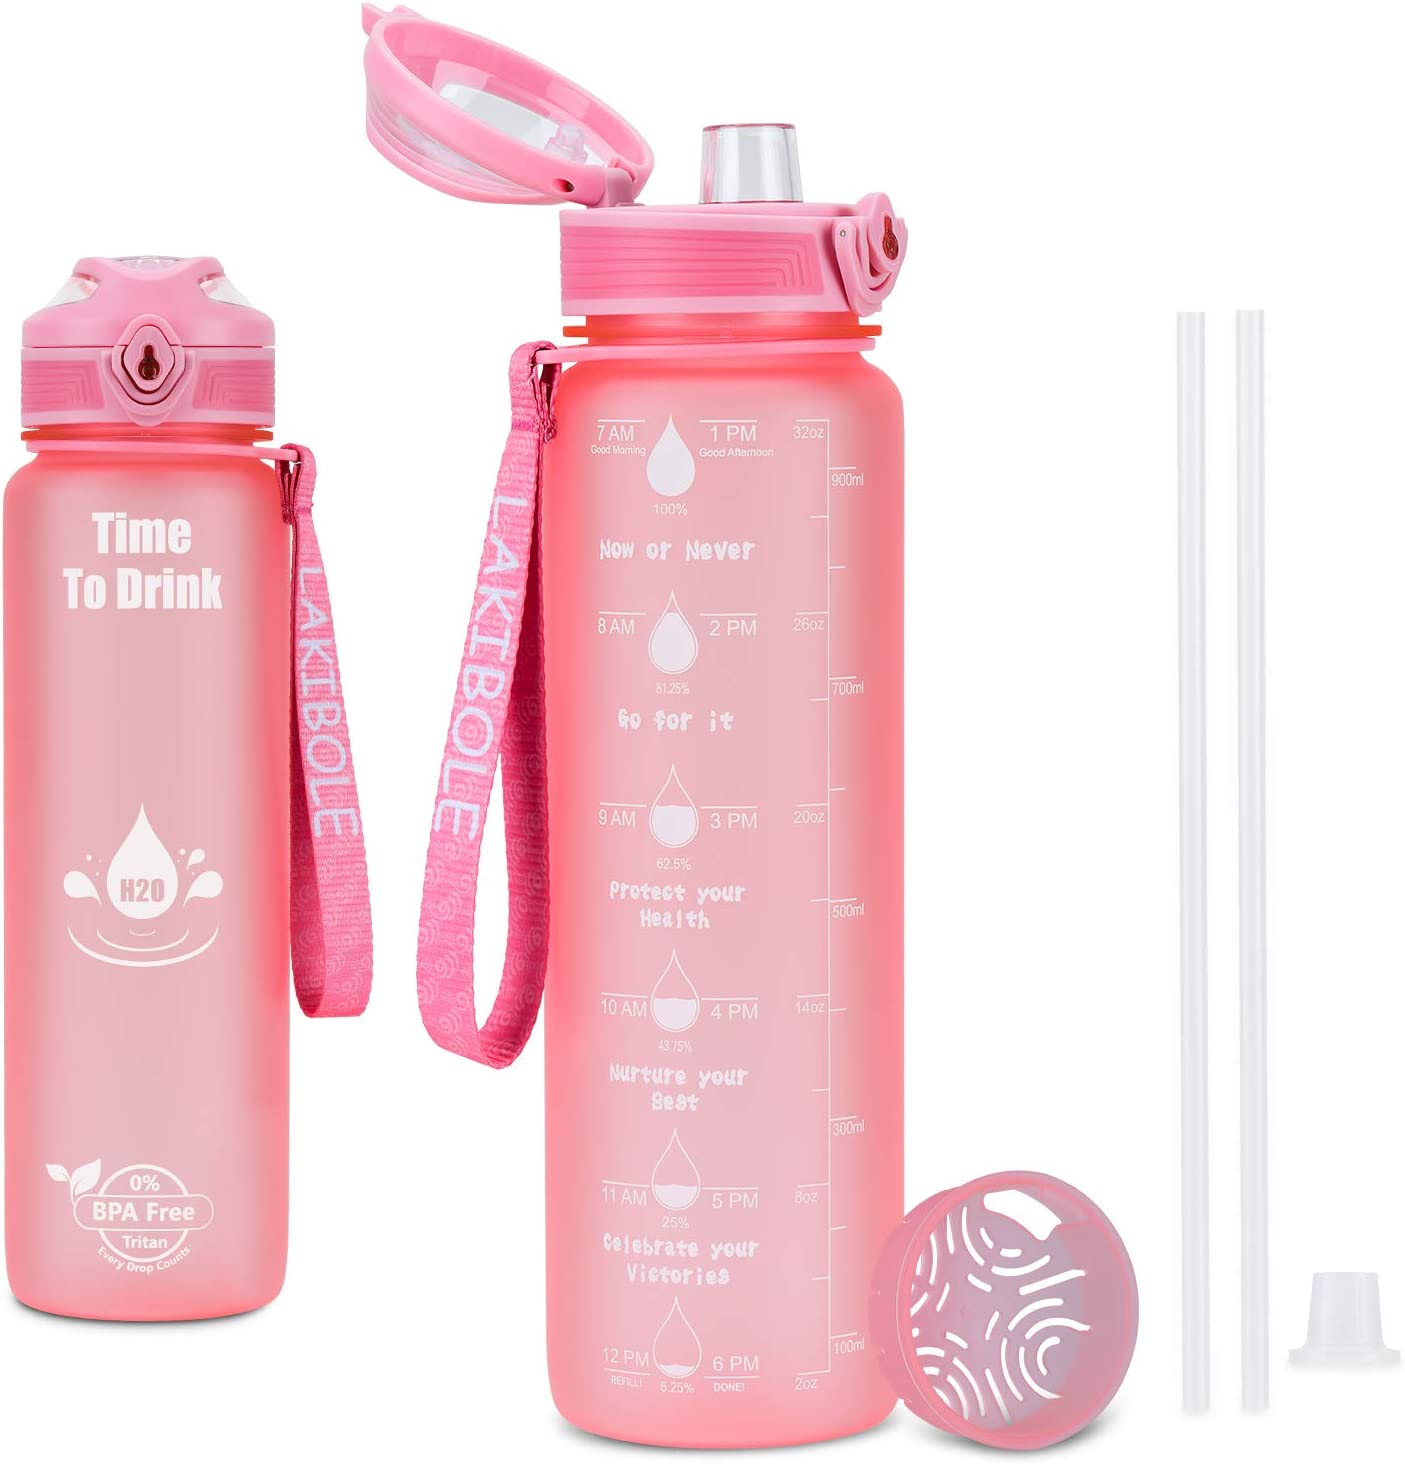 32 oz Water Bottle with Time Marker with Straws, Time to Drink Water Bottle for Office, Gym, Home, Health Gift - Pink